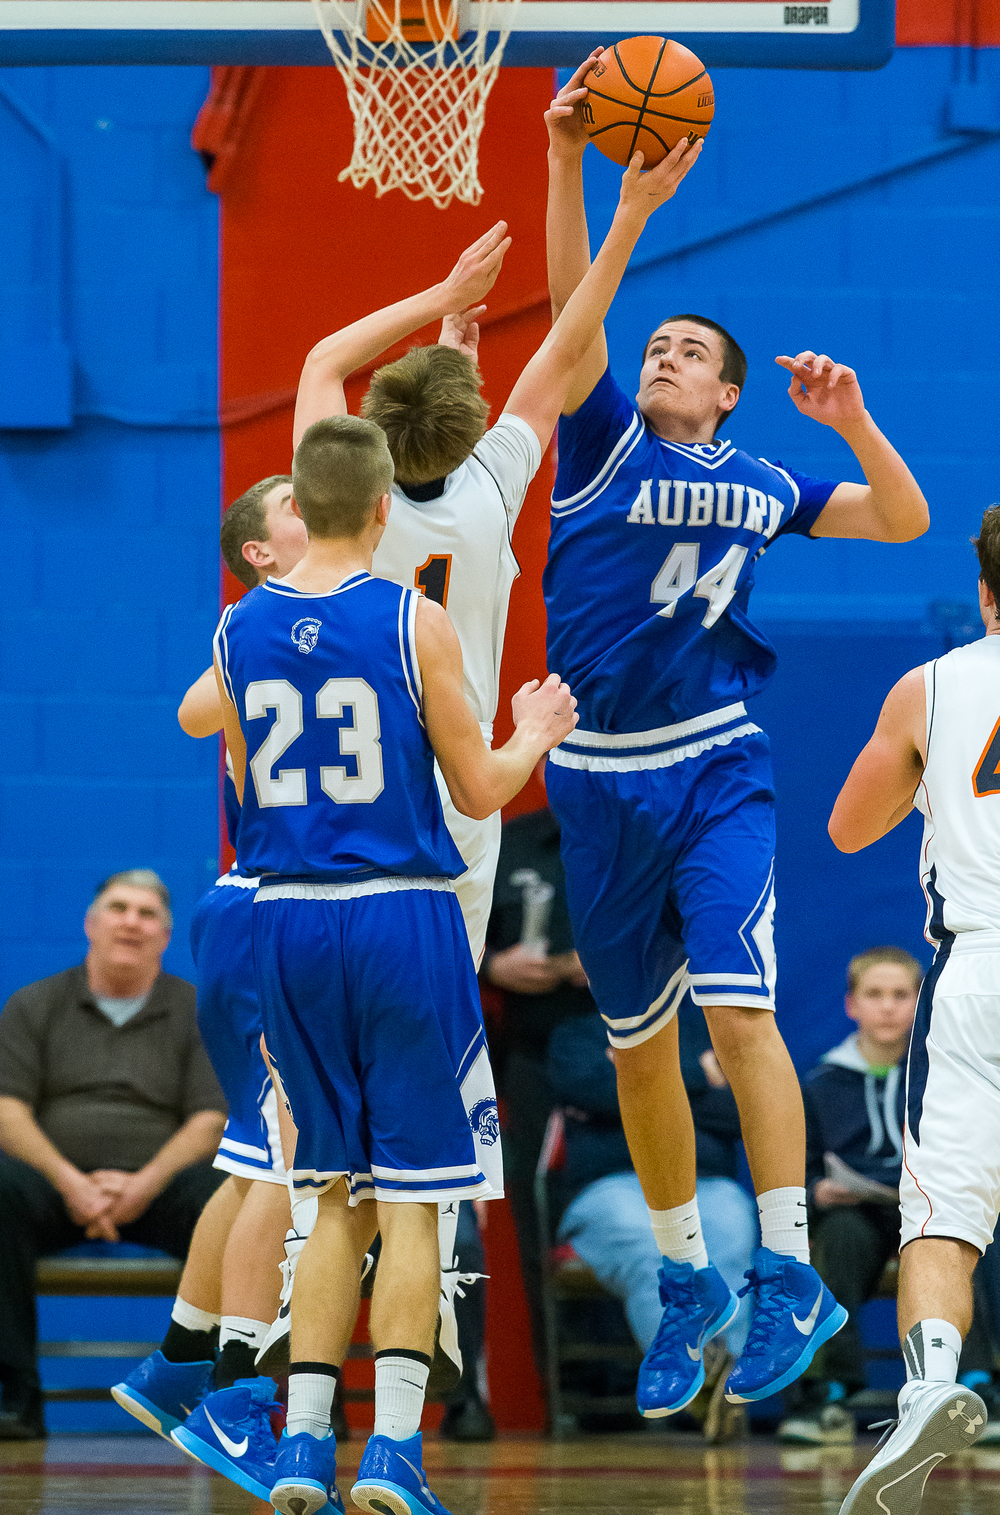 Auburn's Connor Berola (44) blocks a shot from Rochester's Dalton Handlin (1) in the second half during the Sangamon County Tournament championship game at Lincoln Land Community College's Cass Gymnasium, Saturday, Jan. 17, 2015, in Springfield, Ill. Justin L. Fowler/The State Journal-Register